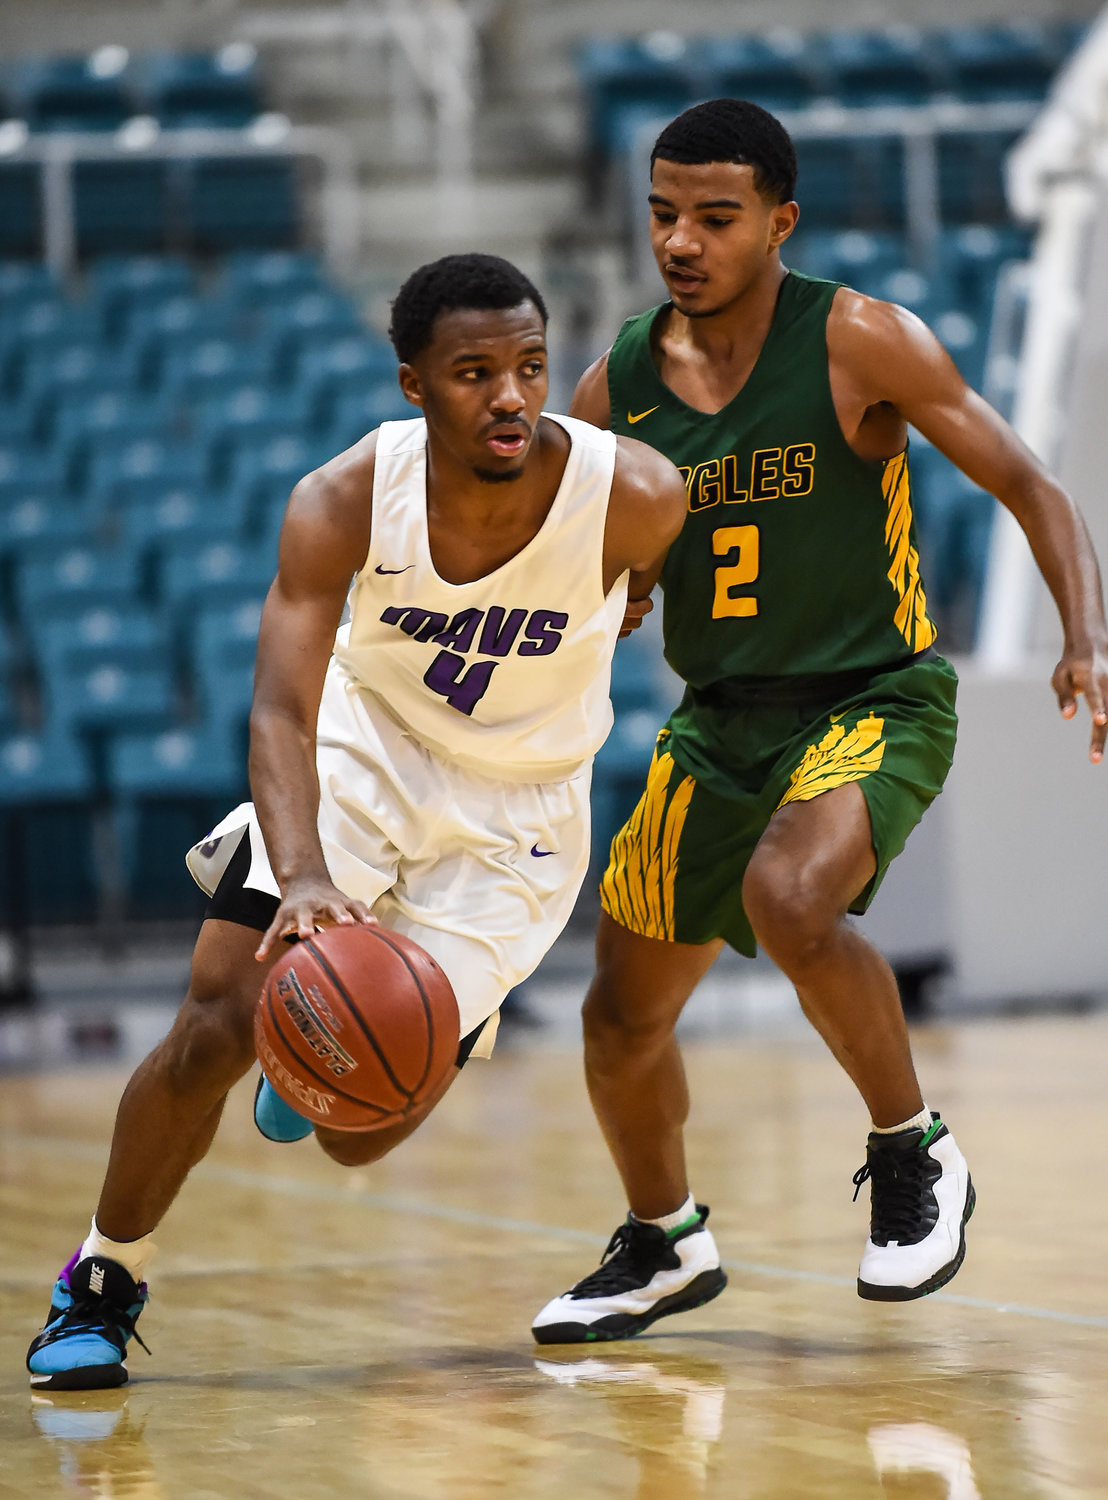 Katy Tx. Dec 7, 2019: Morton Ranch's LJ Cryer (4) drives past Klein Forest's Marion Williams (2) during the Katy Classic at the Merrell Center.  (Photo by Mark Goodman / Katy Times)